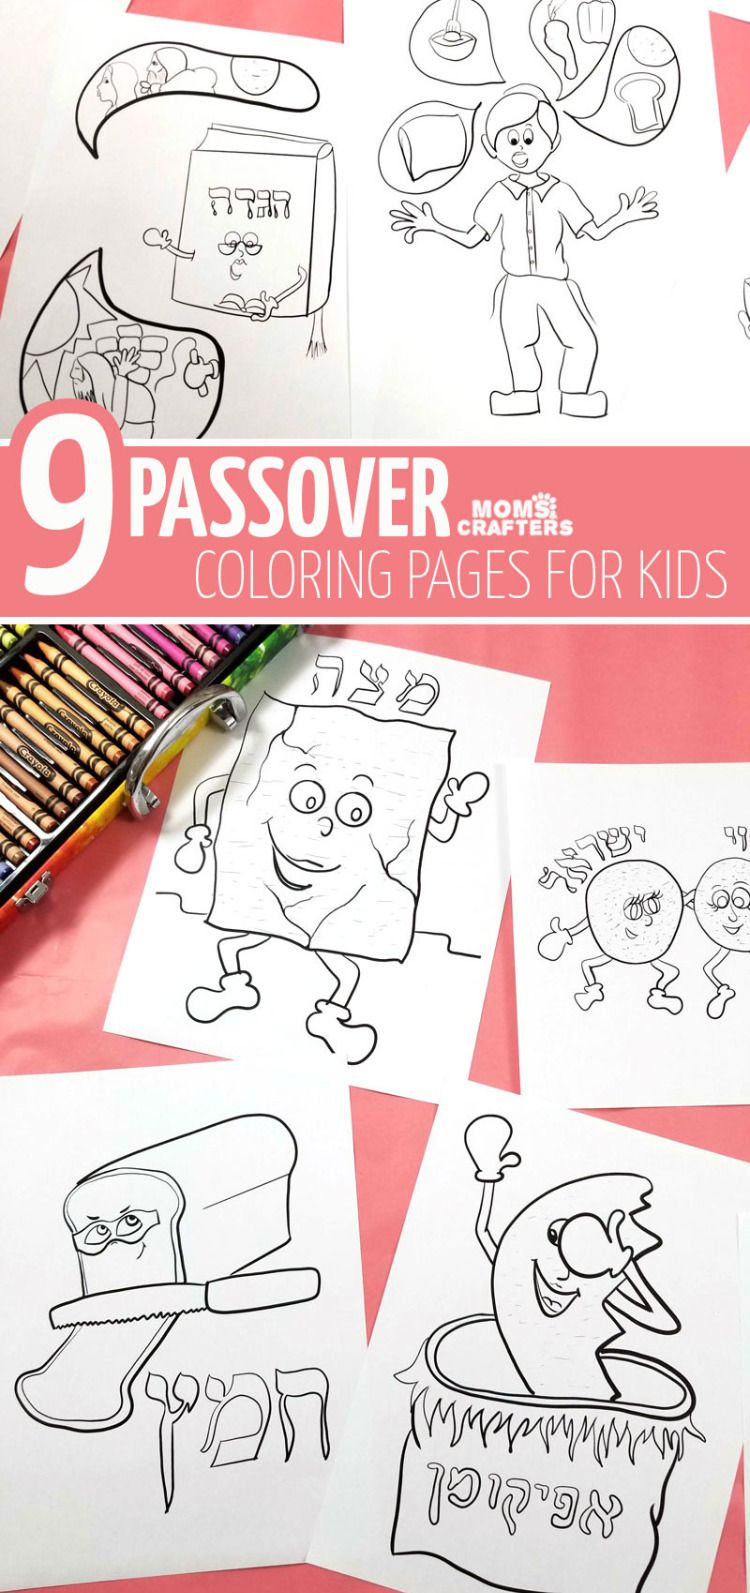 9 Passover Coloring Pages For Kids Printable Pdf Colouring Etsy Coloring Pages For Kids Jewish Activities Hebrew School [ 1593 x 750 Pixel ]